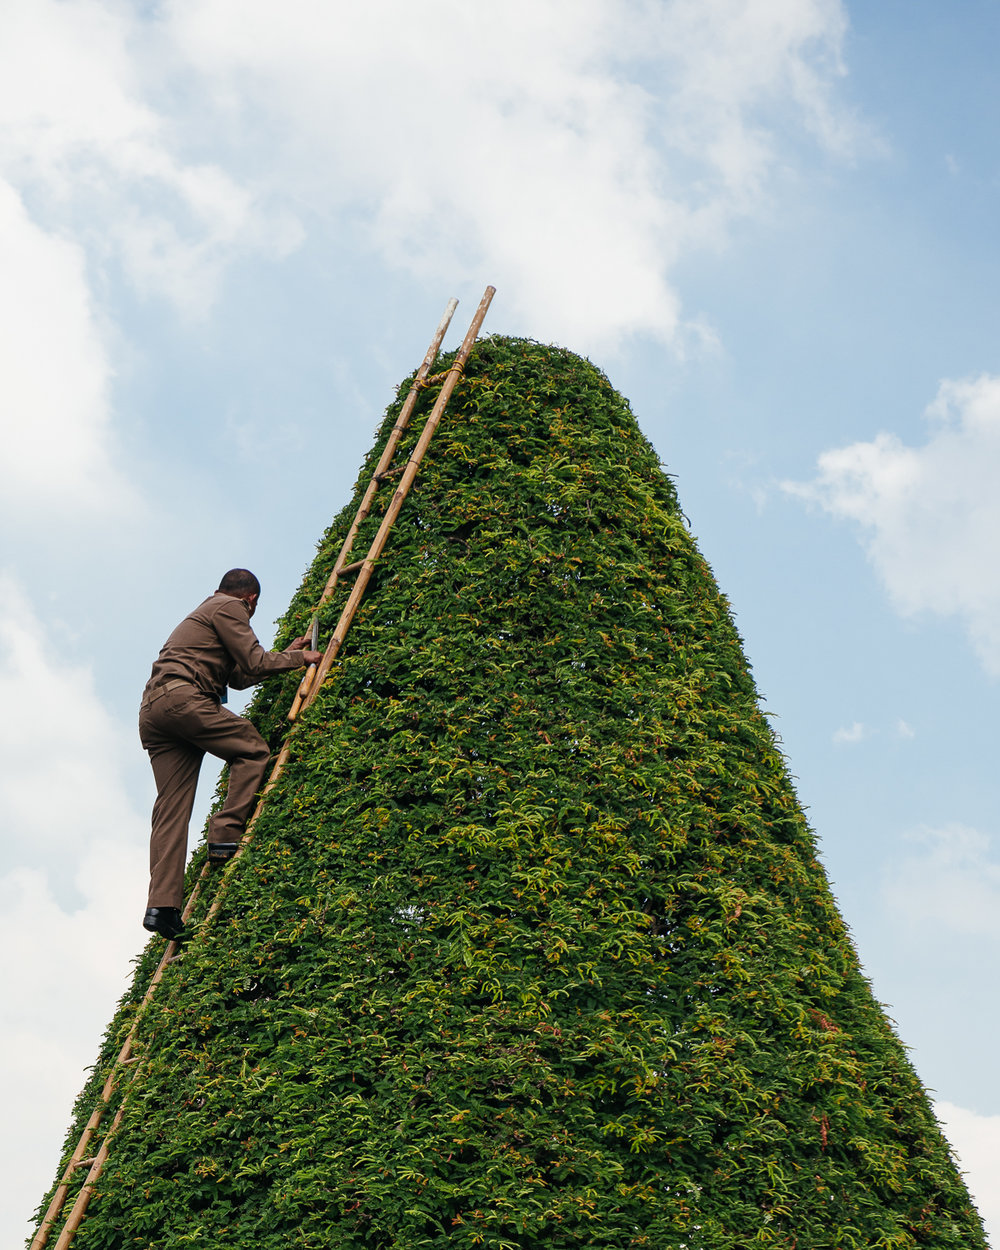 Trimming the hedges.